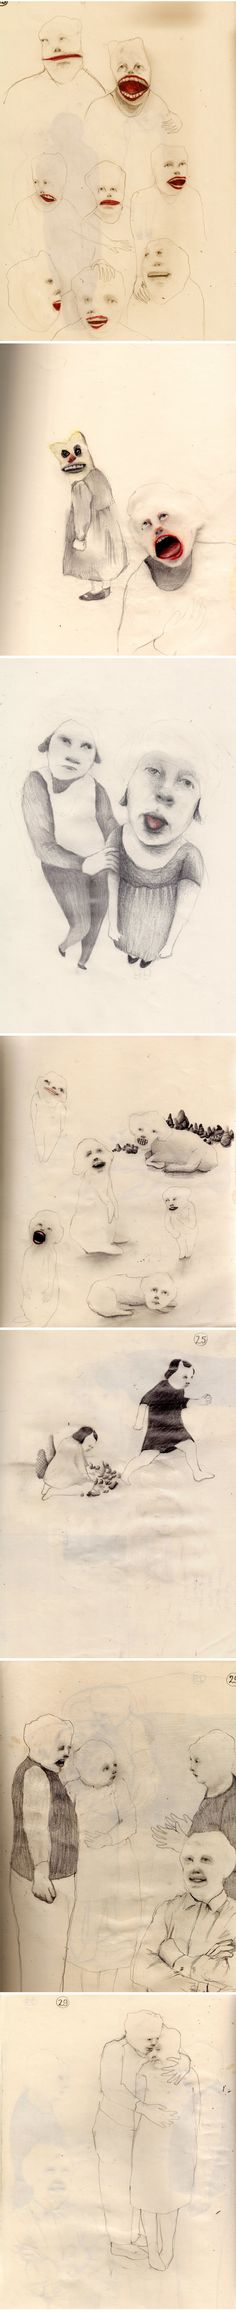 Aris Moore is a New Hampshire-based artist. These pieces are from her daily sketchbook.